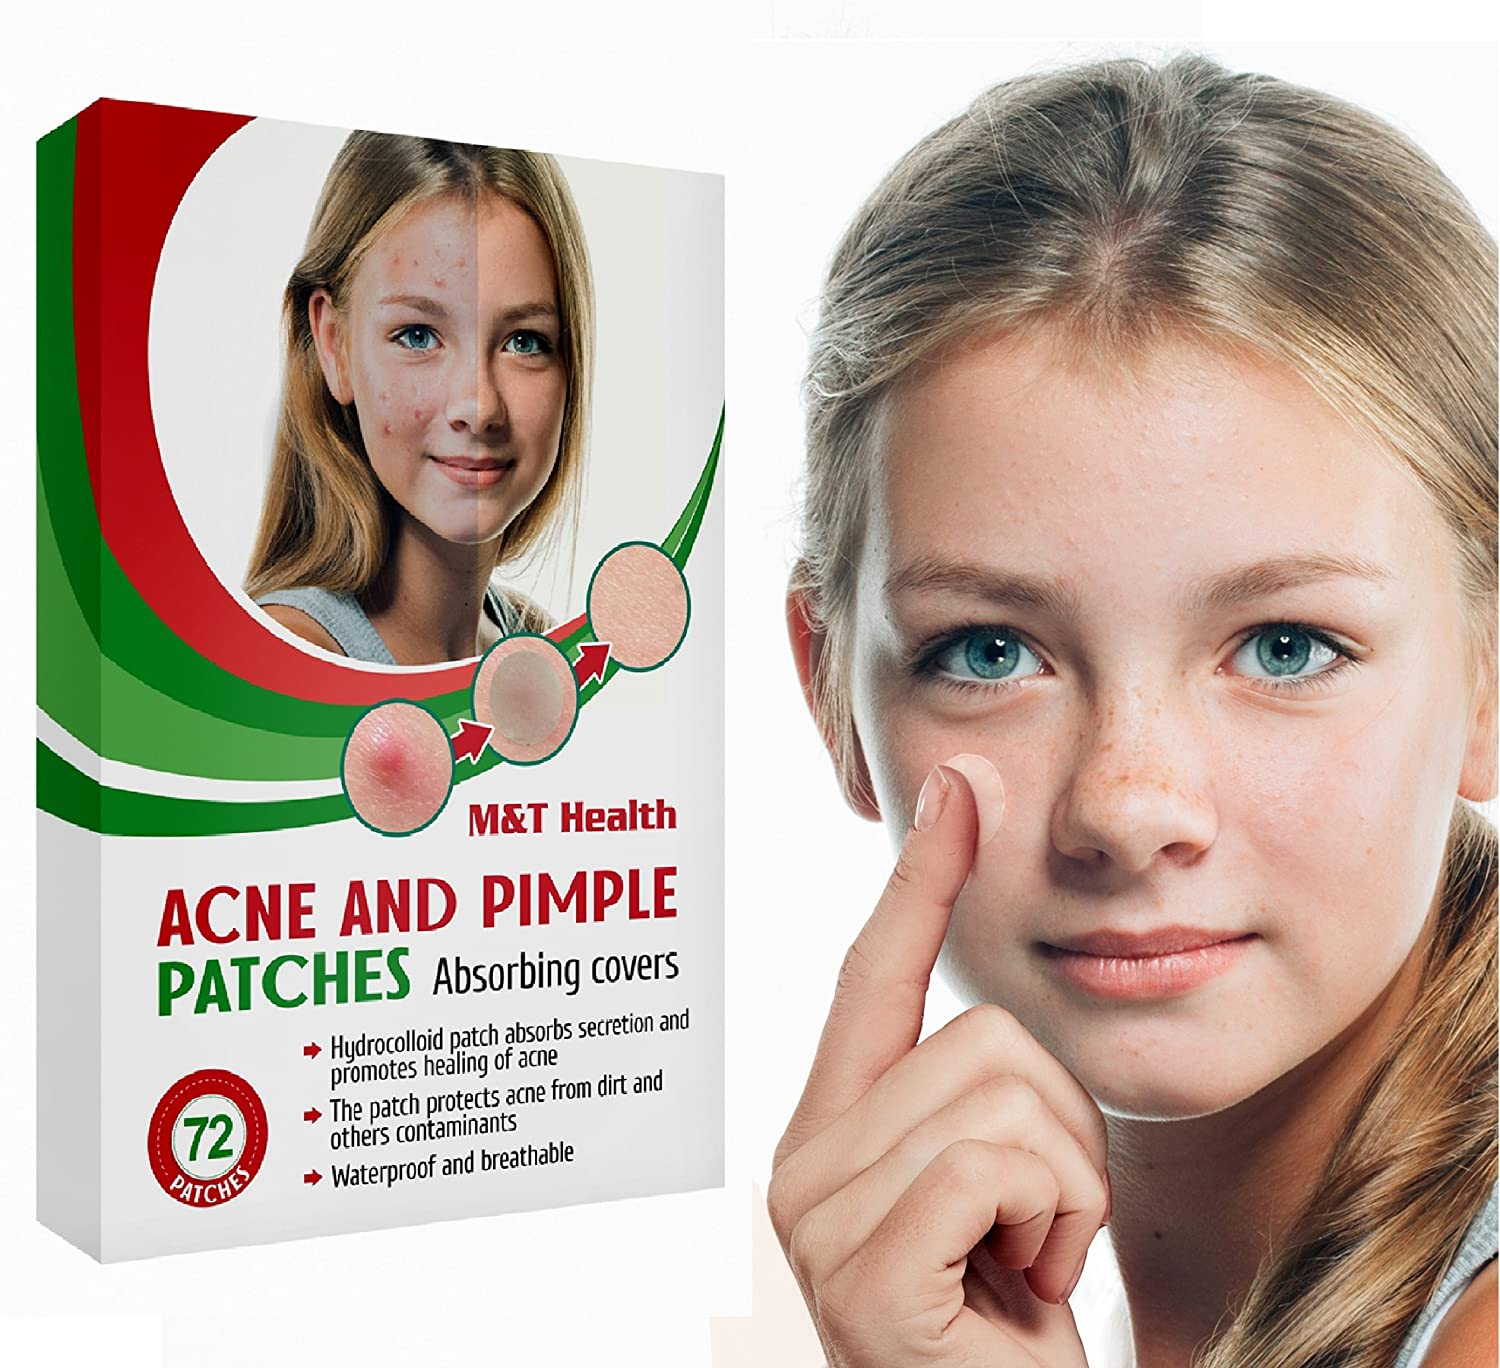 Acne Pimple PatchMaster Hydrocolloid Dressing Skin Care 72 Count - Acne AbsorbingColloidSpot Patches - Cystic Hydrocolloid Acne Cover Patch - Pimple Spot Sticker Ltd.